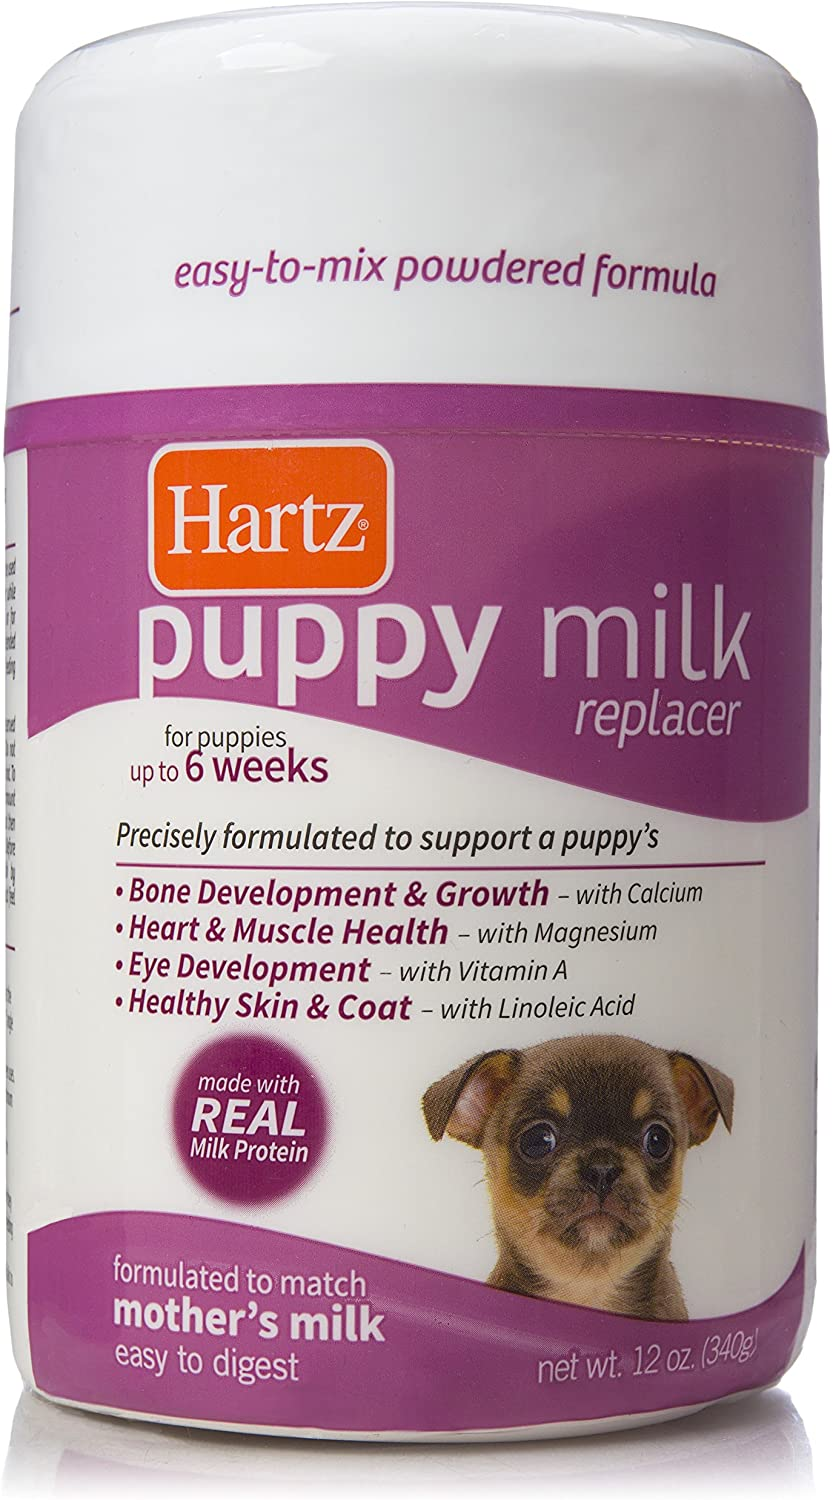 Hartz Powdered Puppy Milk Replacer Review